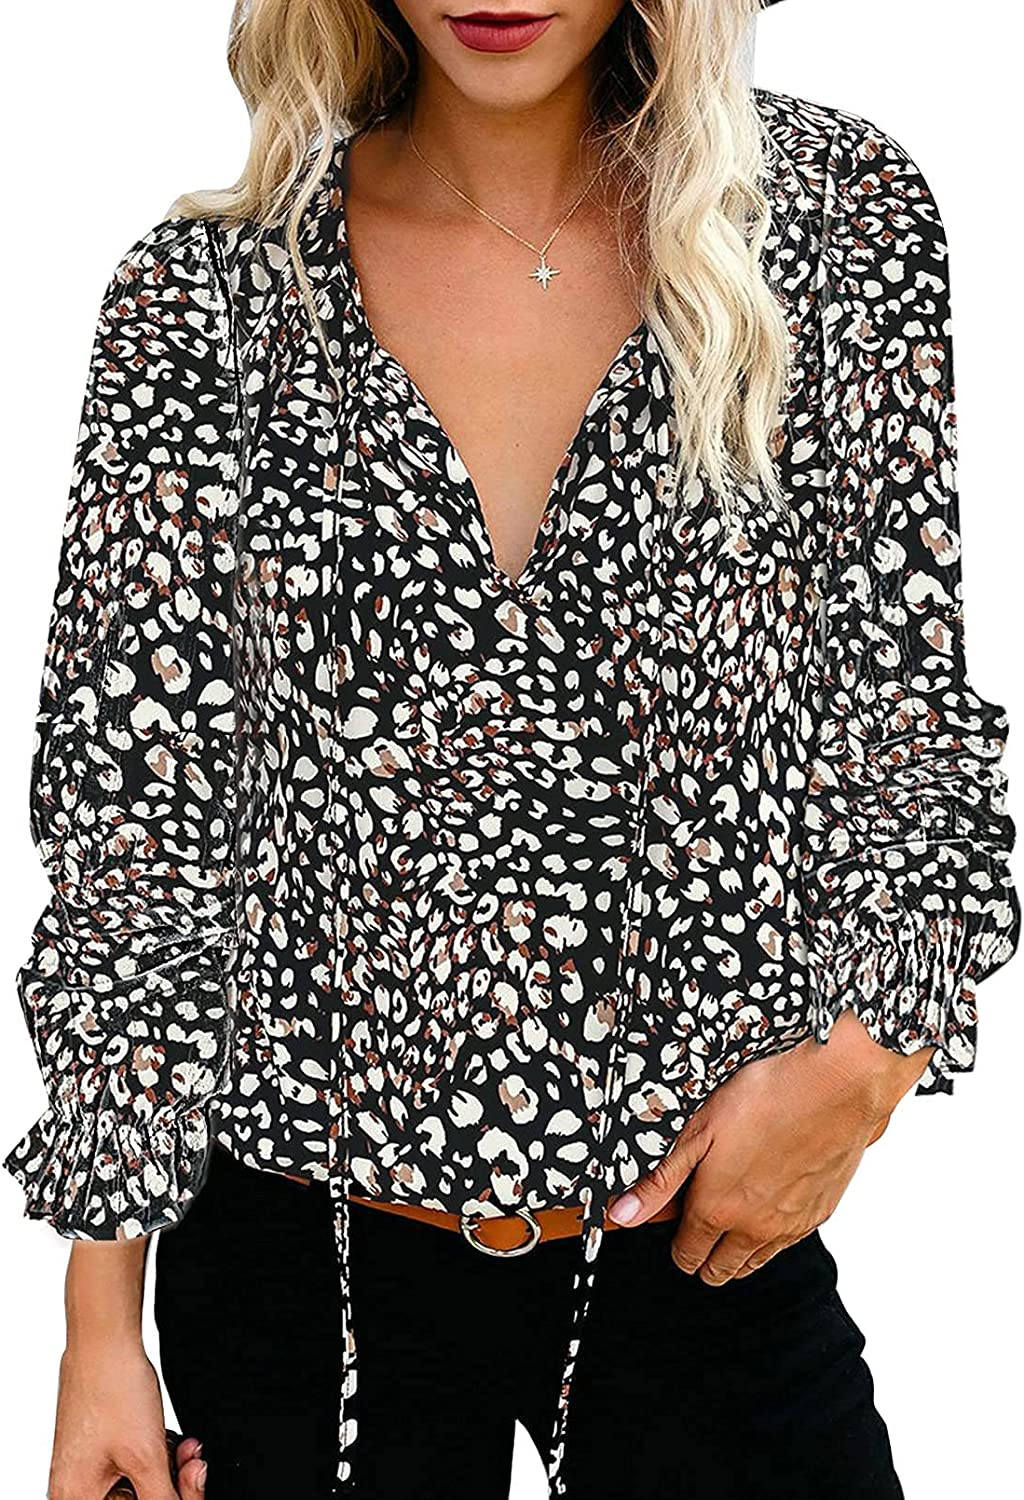 Happy Sailed Womens Summer Boho Floral Neck Ruff V Self-Tie Tops Dallas Mall In a popularity